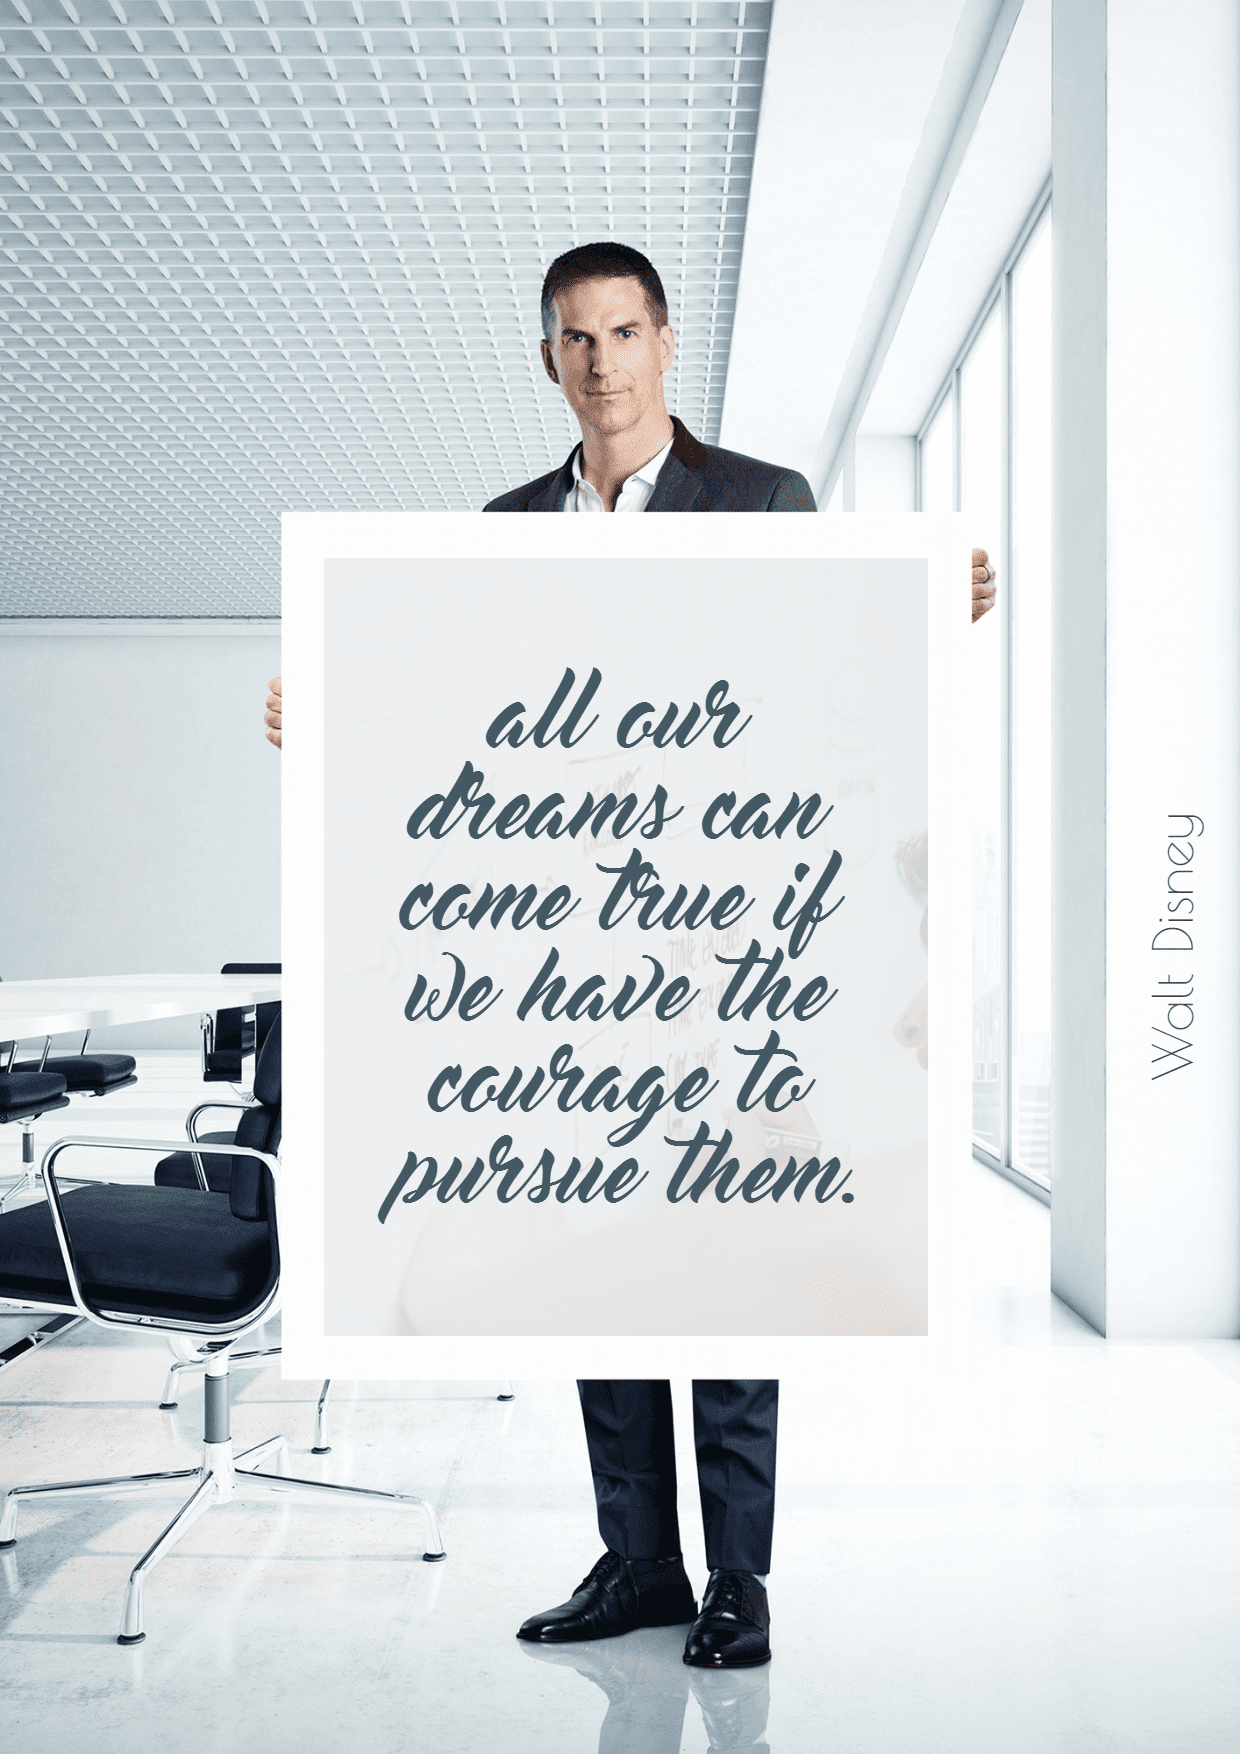 Advertising,                Brand,                Design,                Presentation,                Poster,                Text,                Quote,                Mockup,                Inspiration,                Life,                Photo,                Image,                Business,                 Free Image